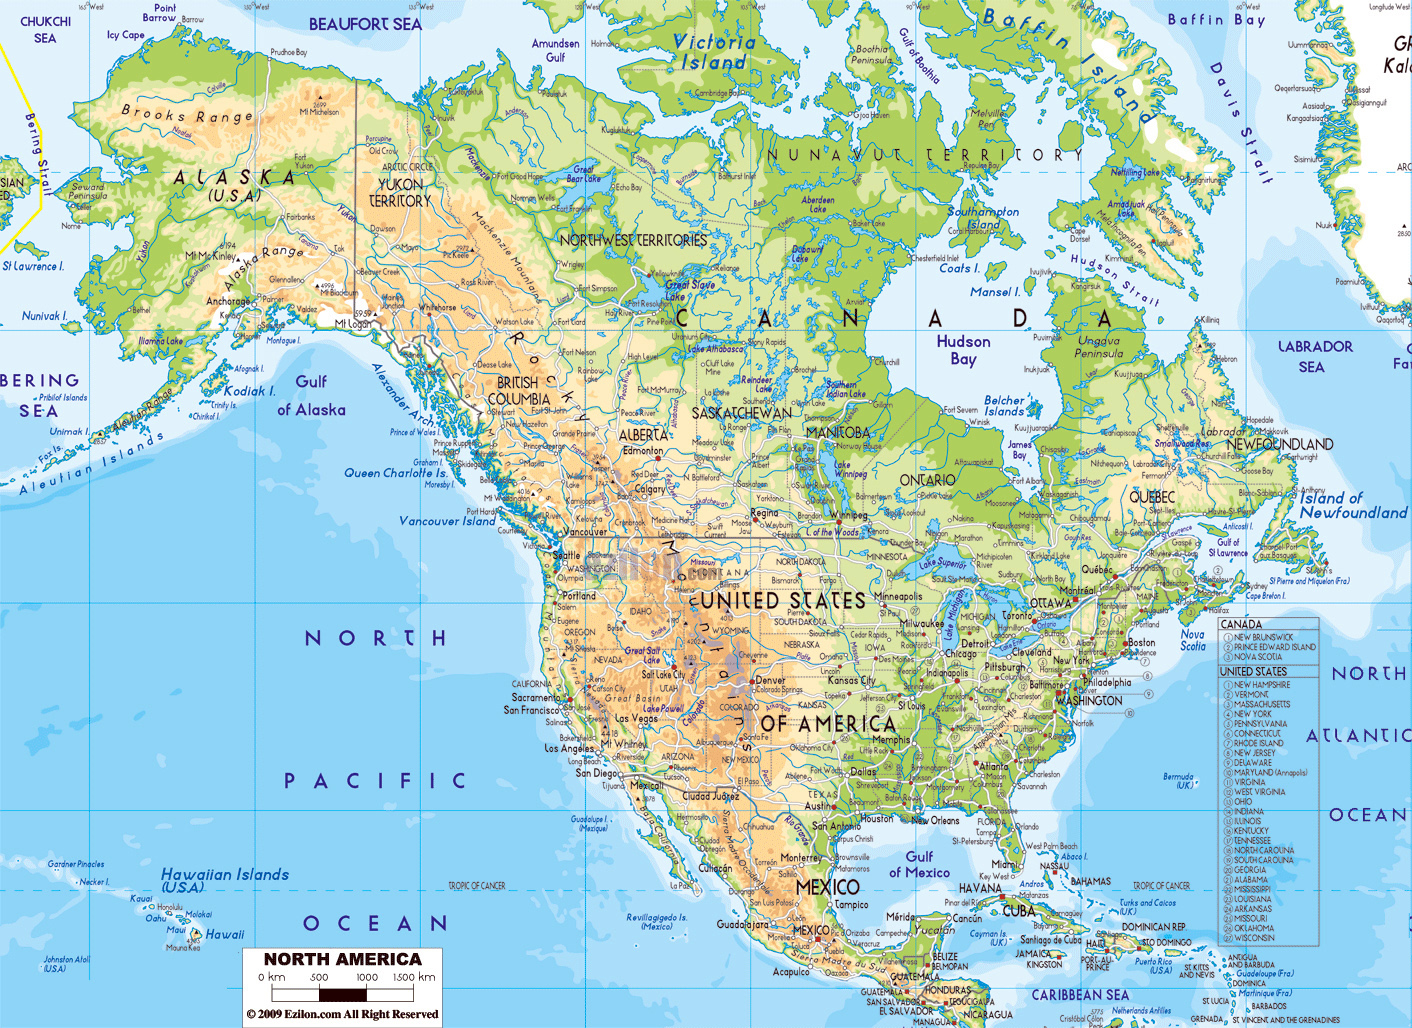 Maps of North America and North American countries Political maps Administ